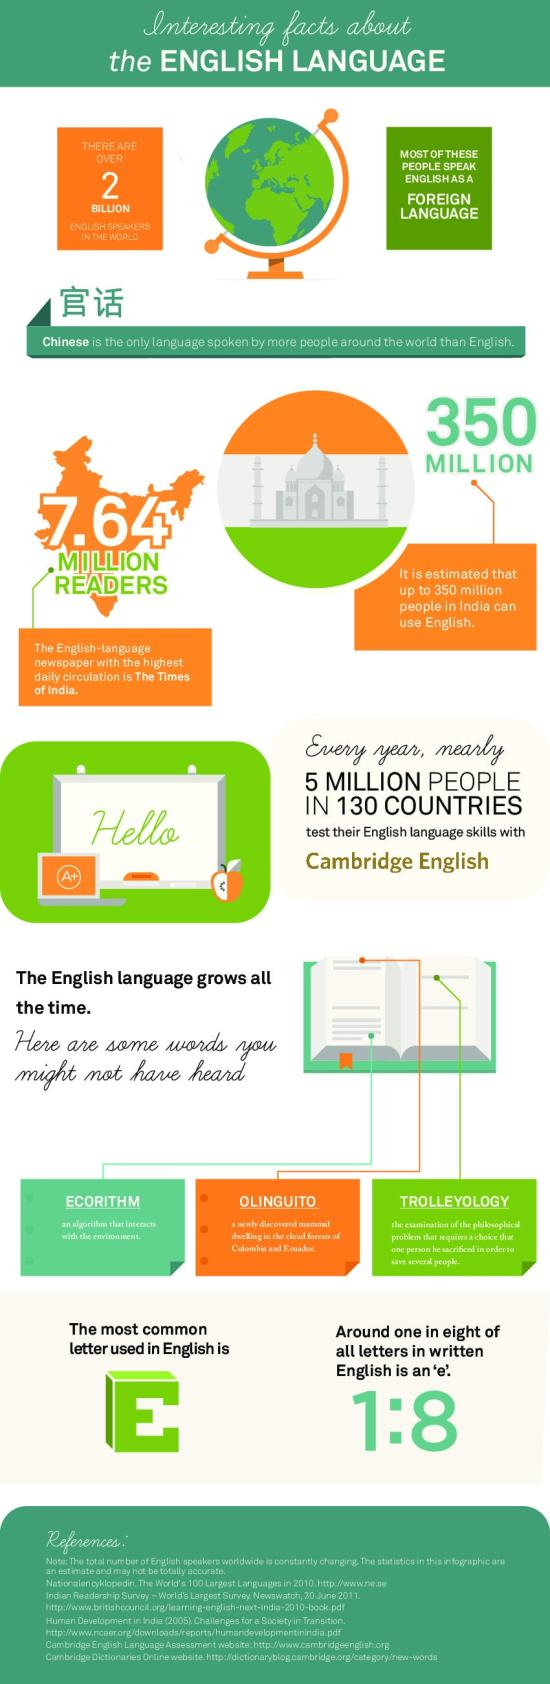 Infographic: Interesting Facts about the English Language Infographic